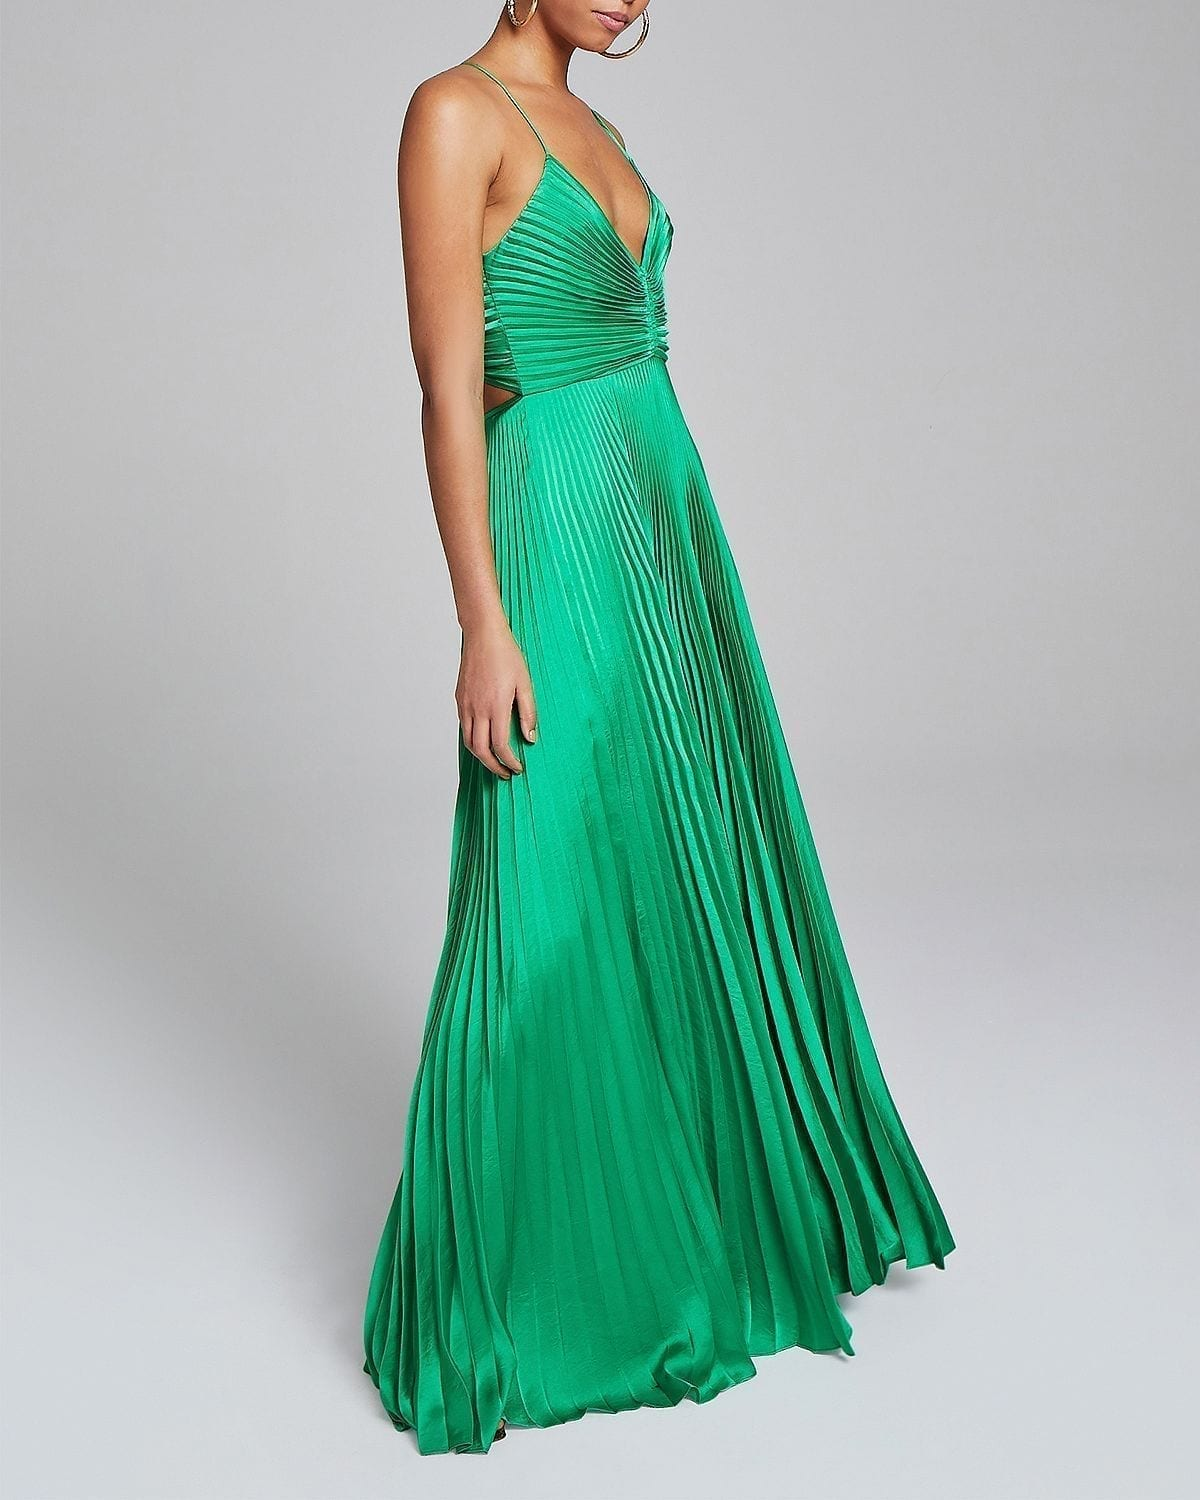 A.L.C. Aries Pleated Open Back Dress